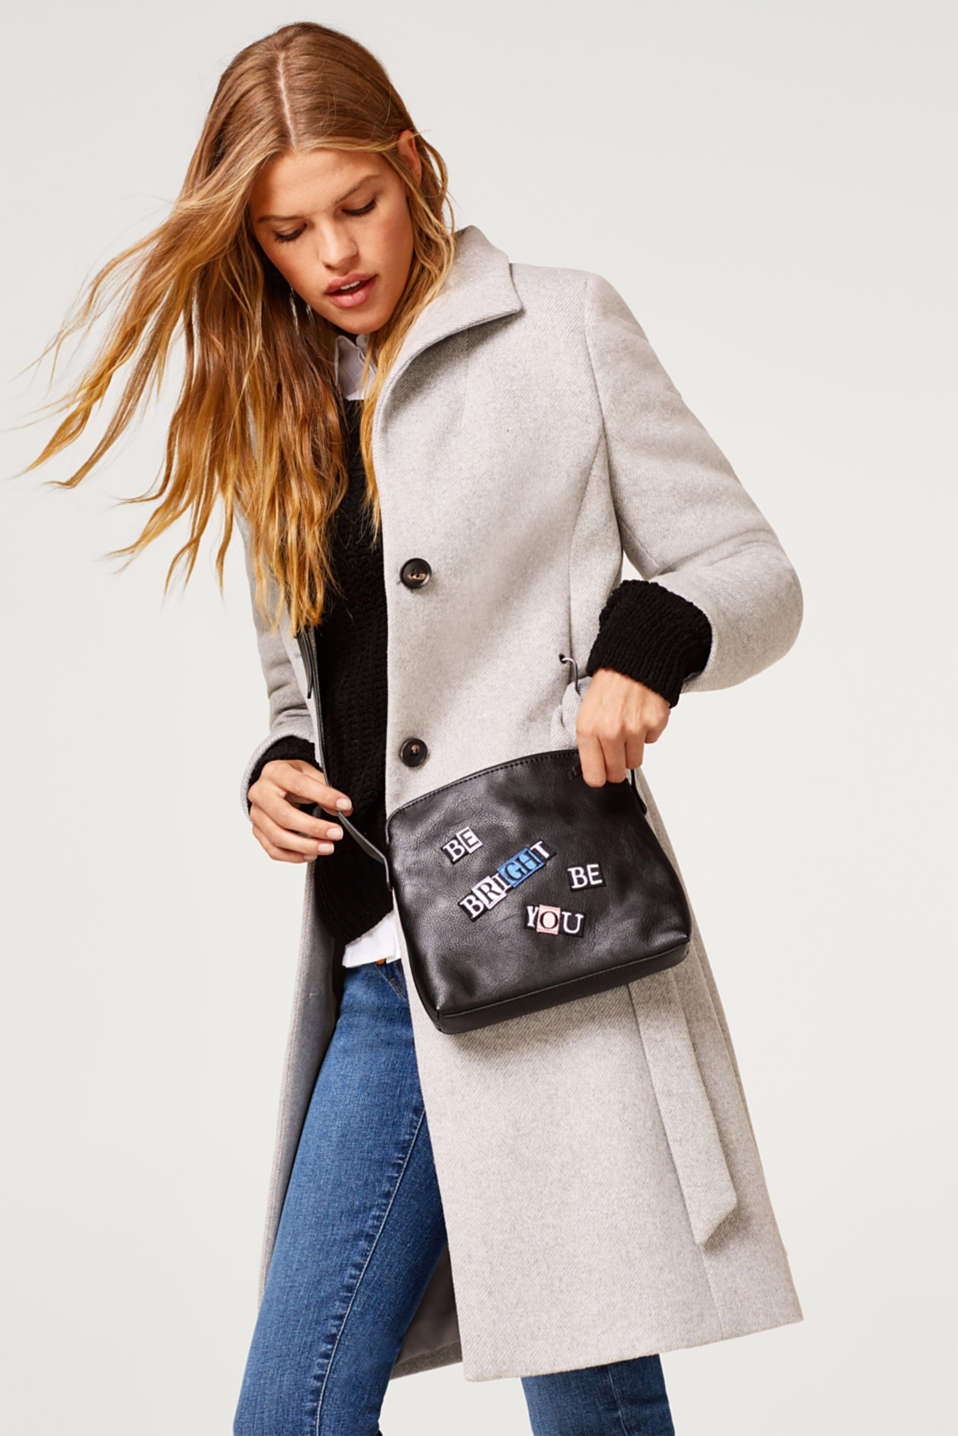 Shoulder bag with a statement, in faux leather